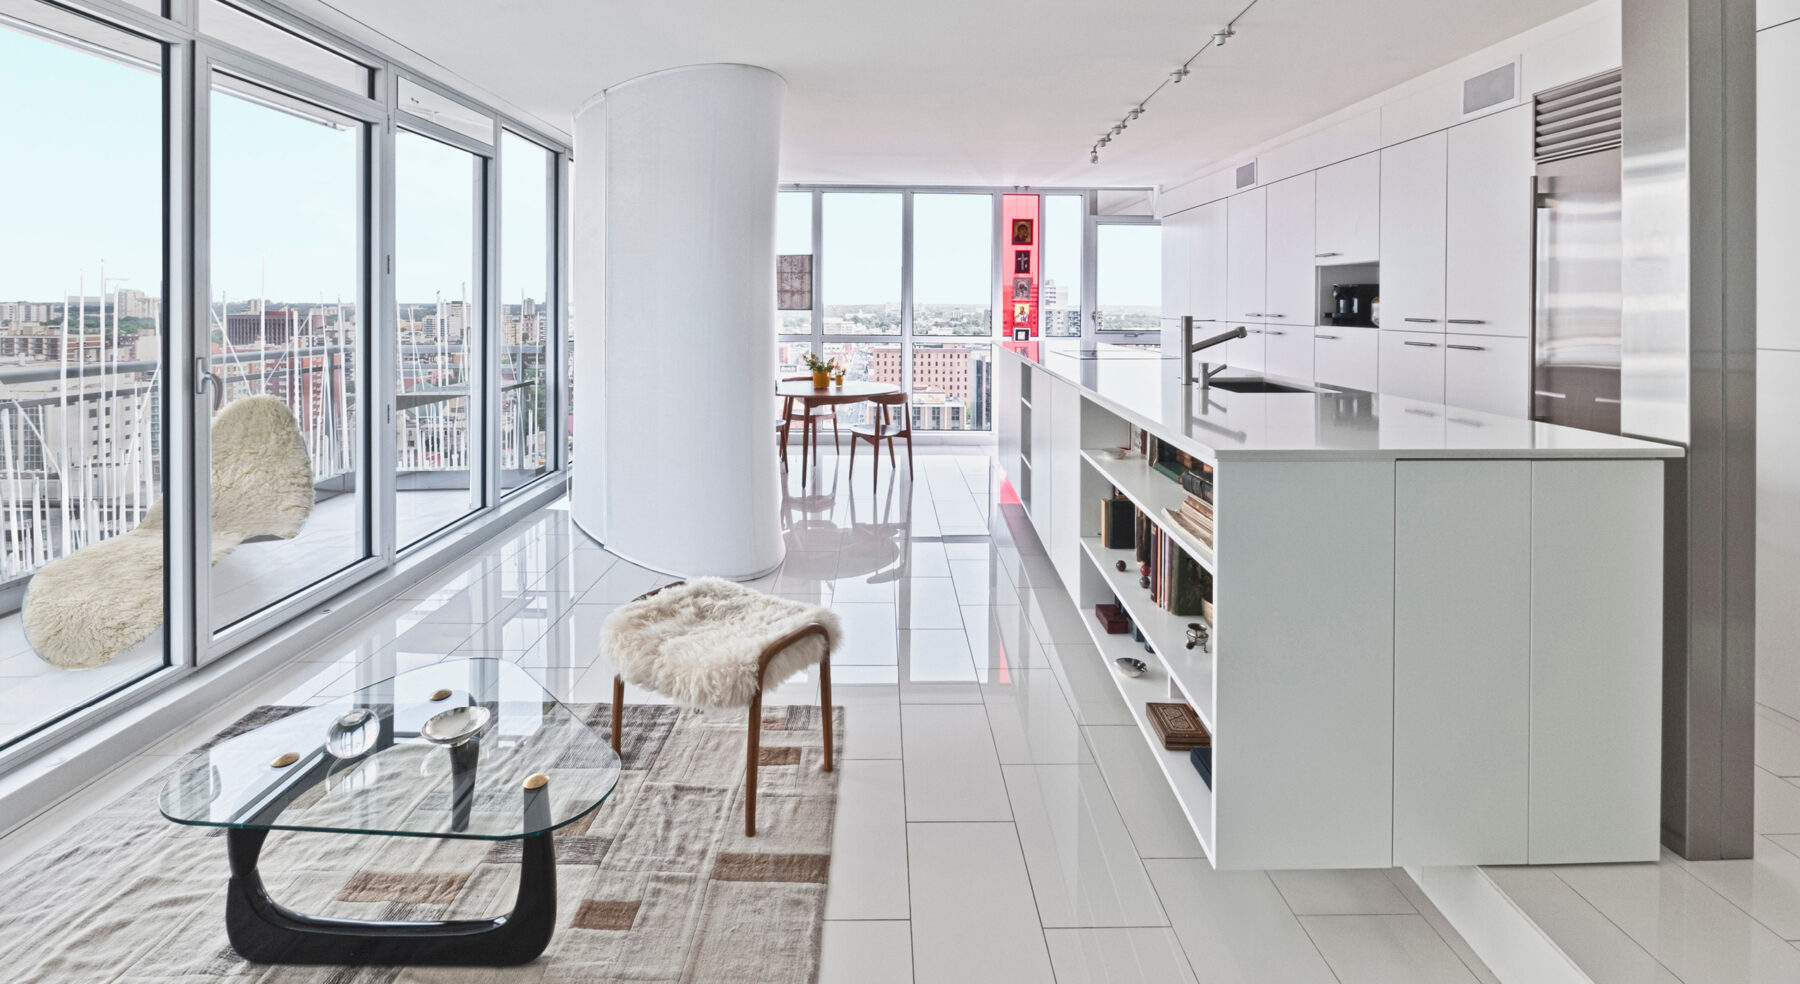 Redeveloper Apartment living area and kitchen with view of balcony